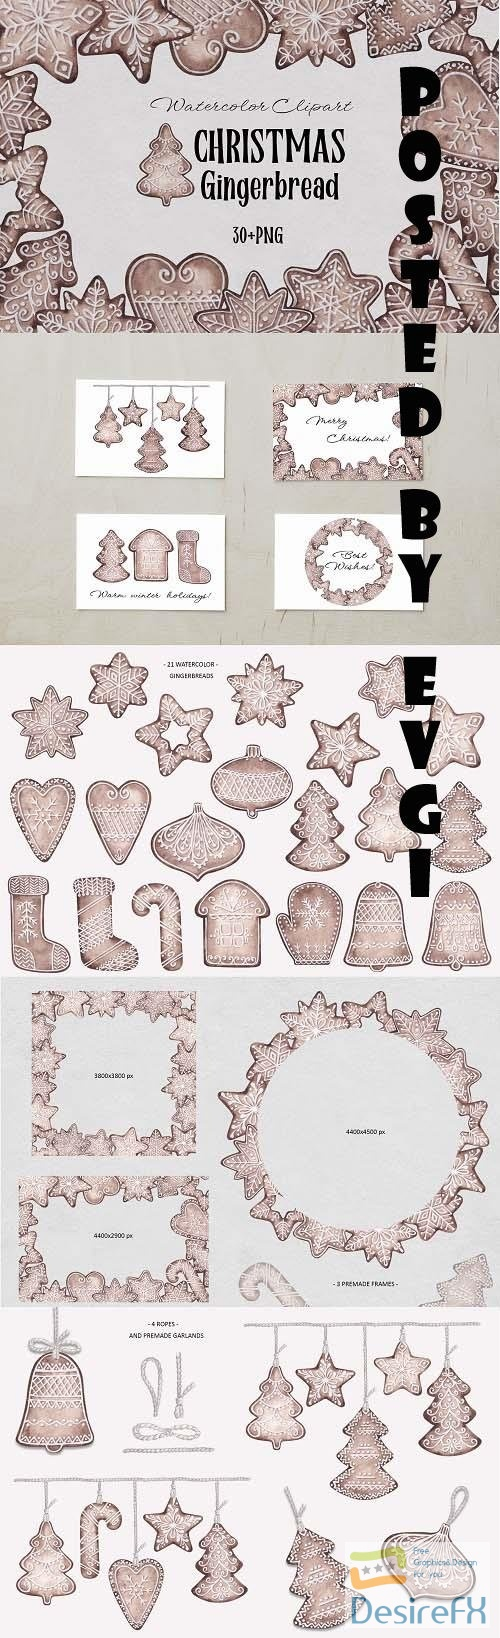 Watercolor Clipart Christmas Gingerbread - 1631337